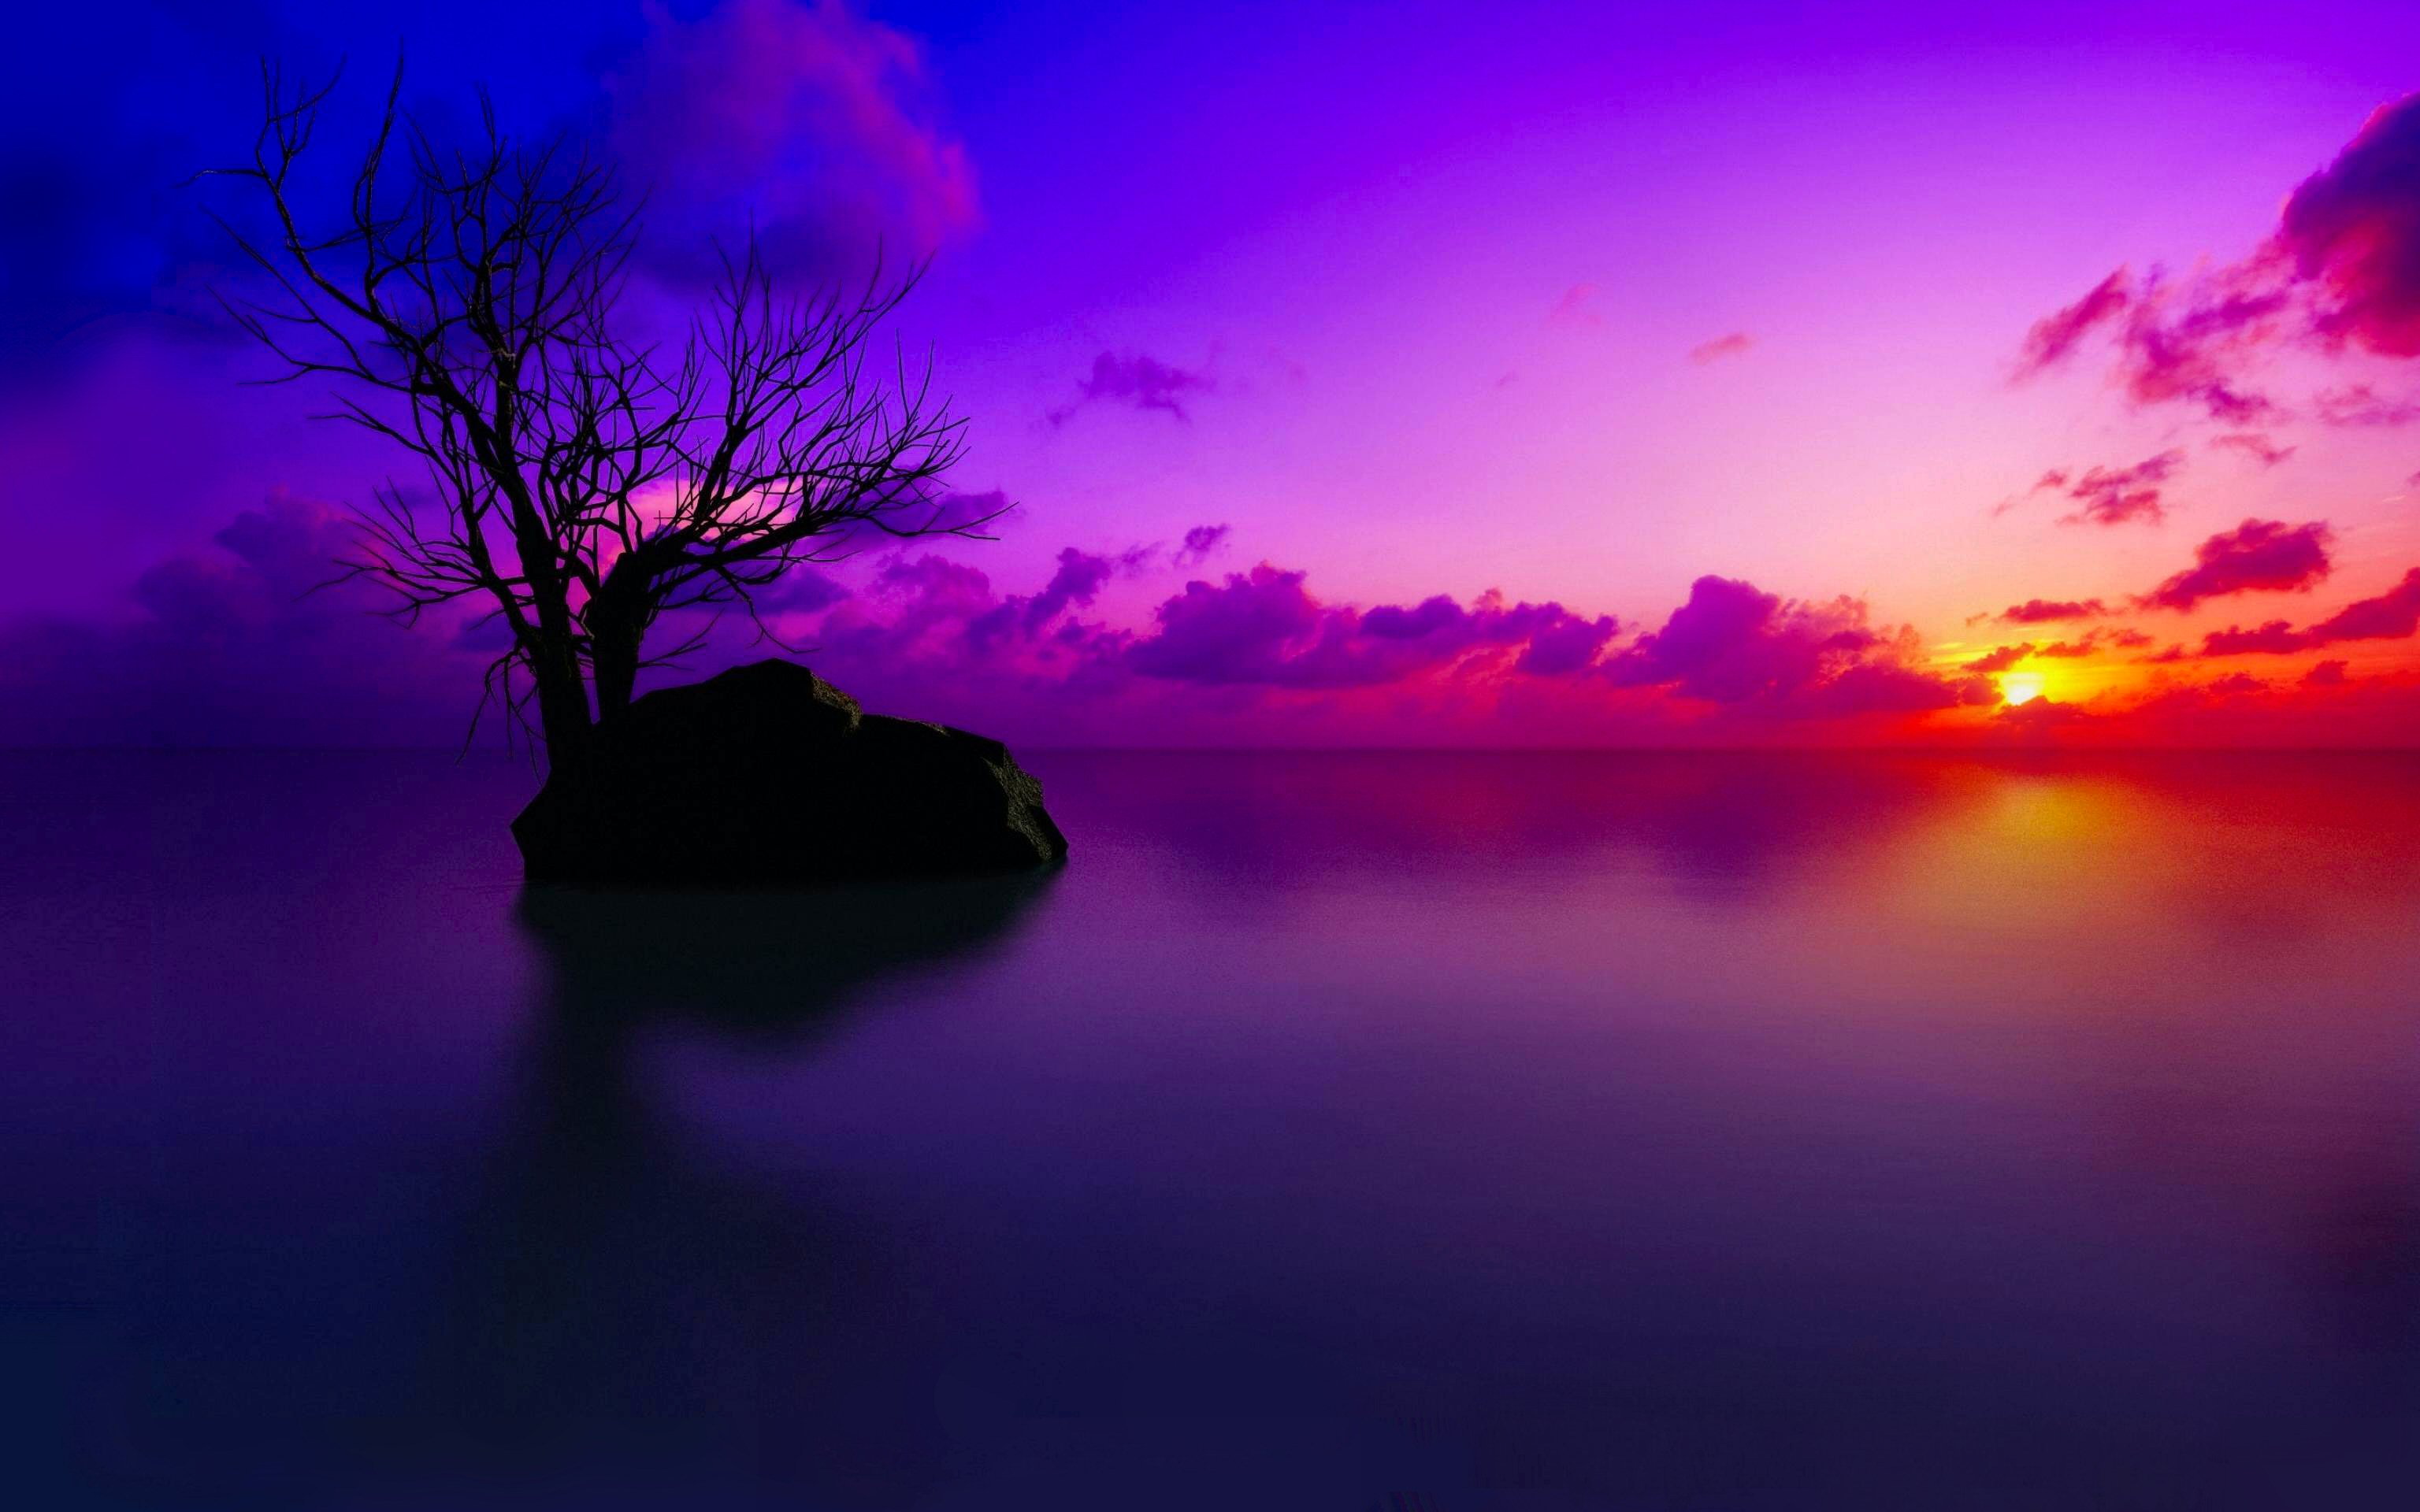 Sunset Wallpaper Desktop